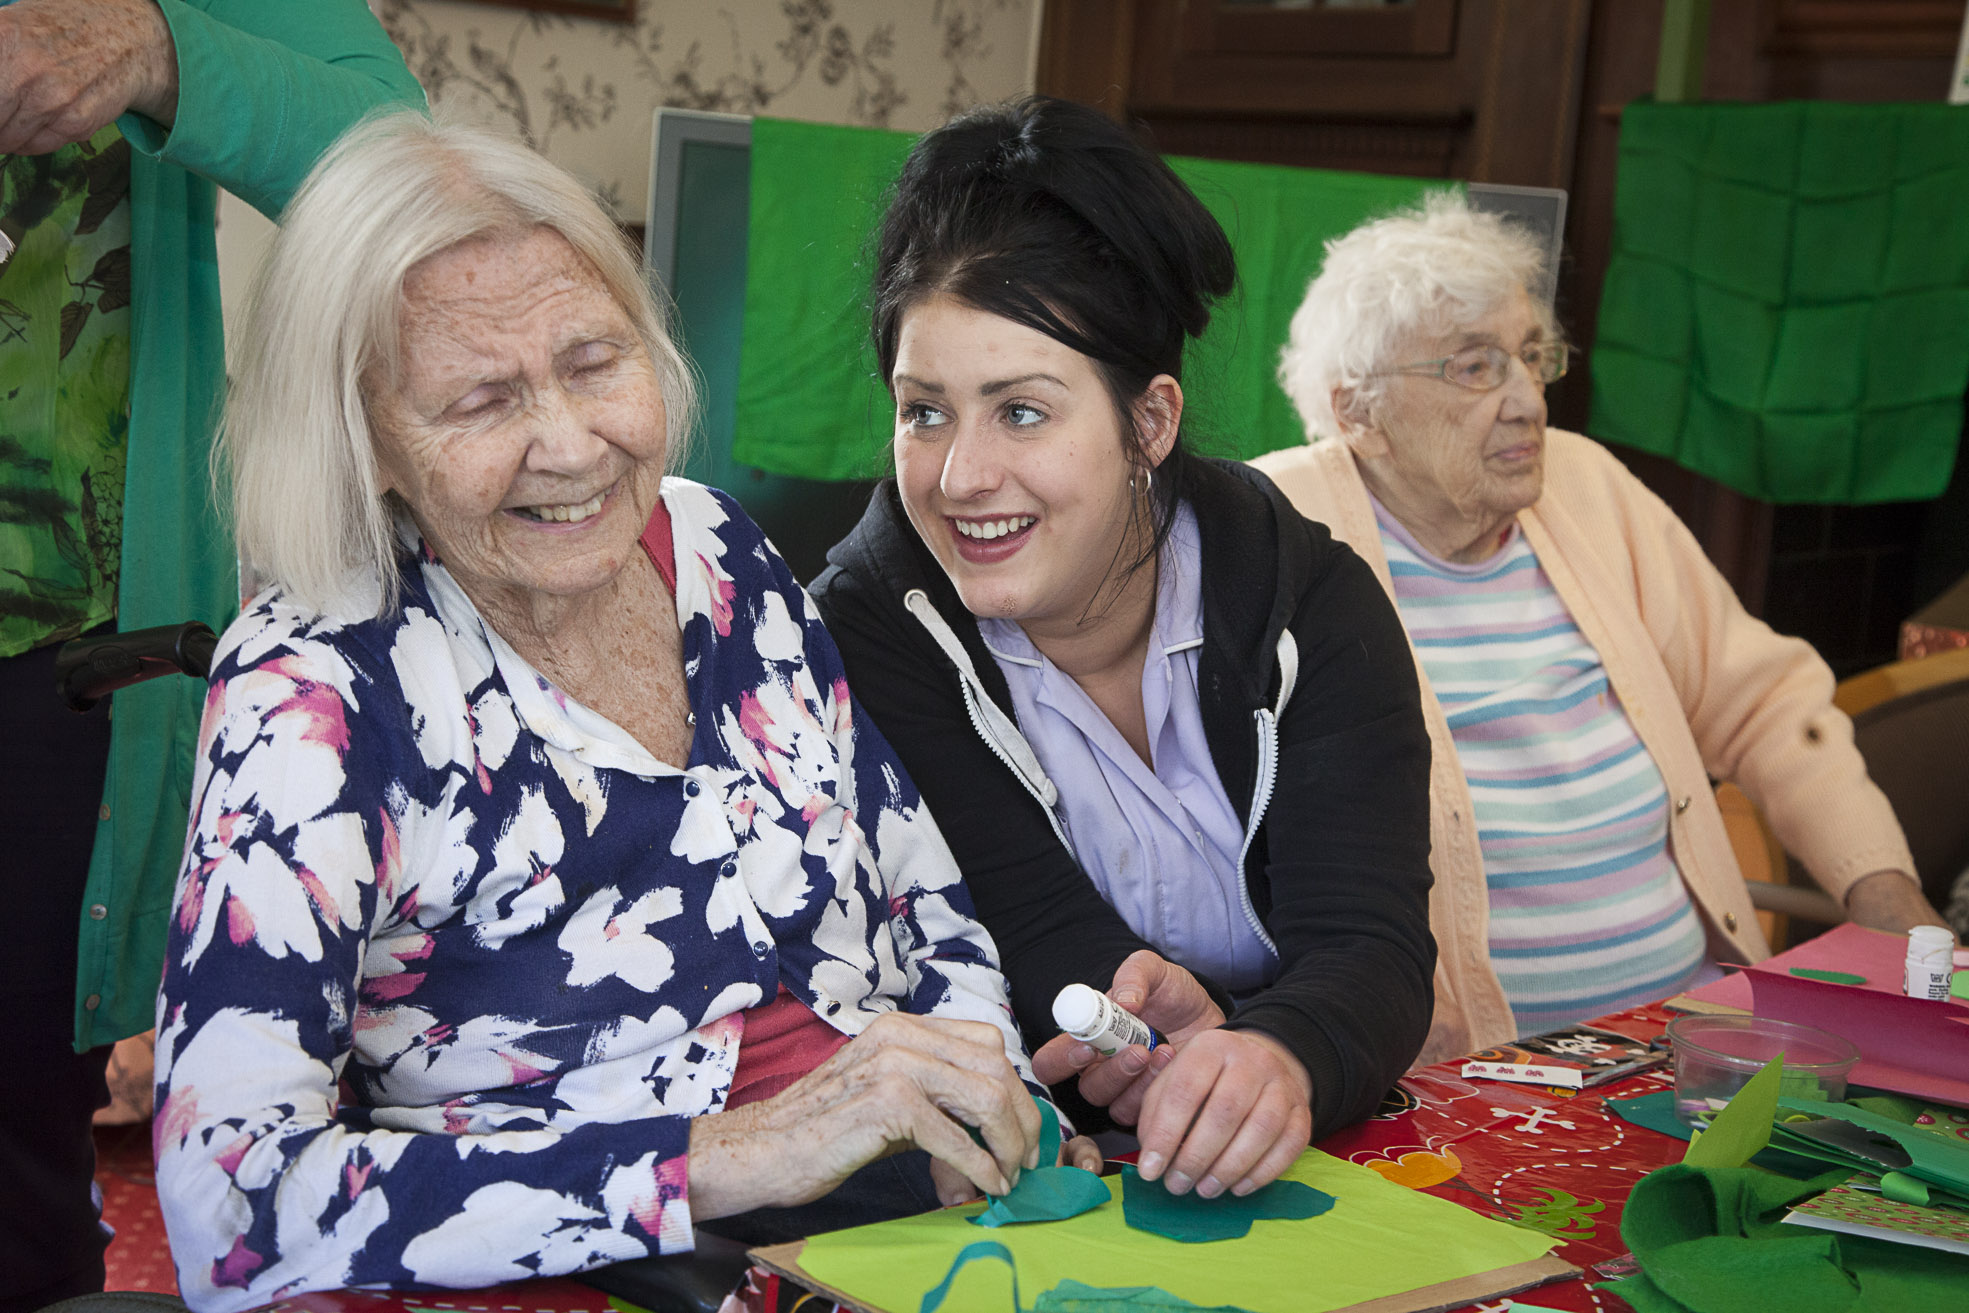 People with dementia using meditation in art project